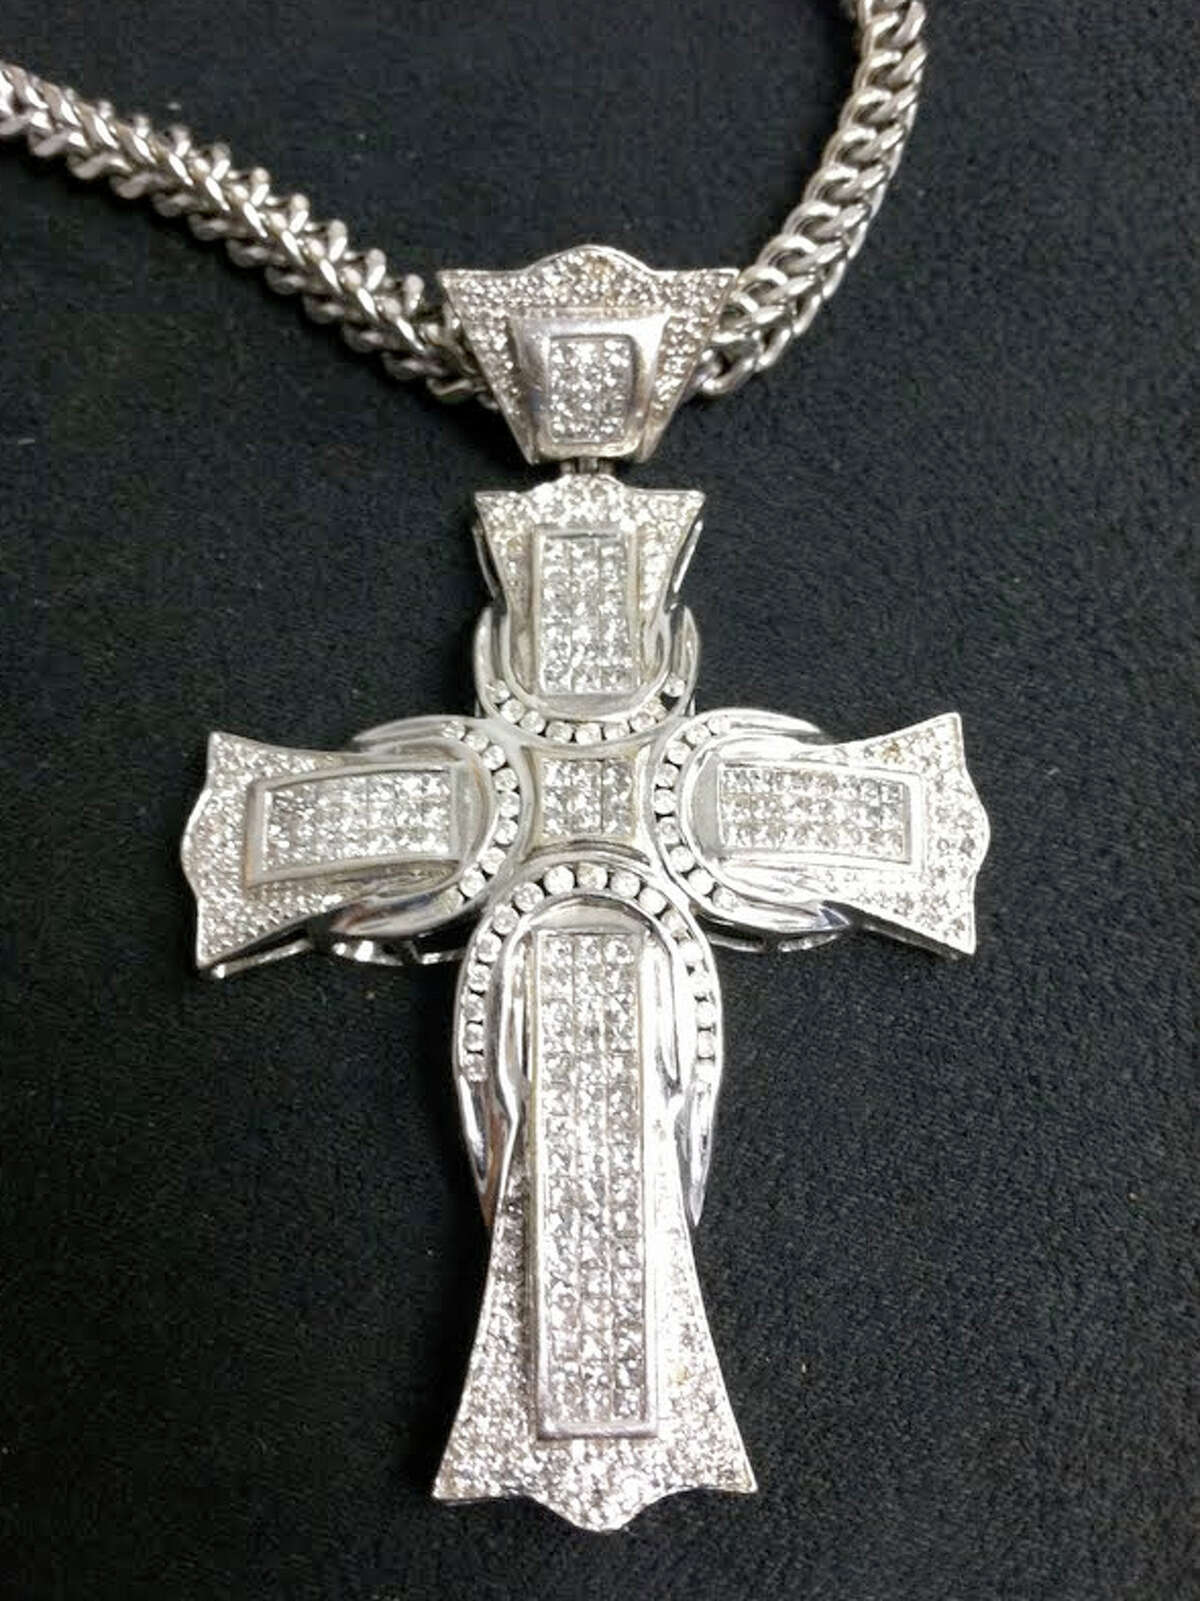 Silver-colored necklace with cross pendant